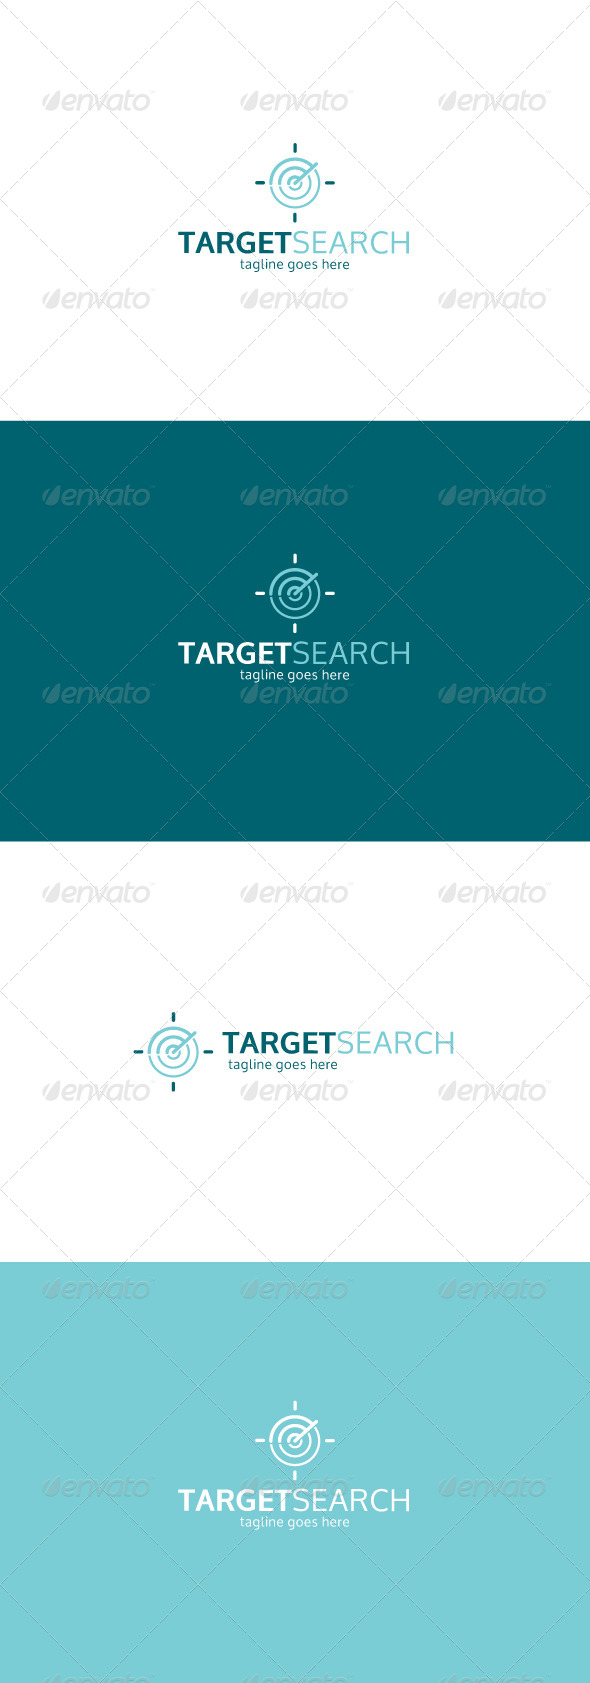 GraphicRiver Target Search Logo 7731538